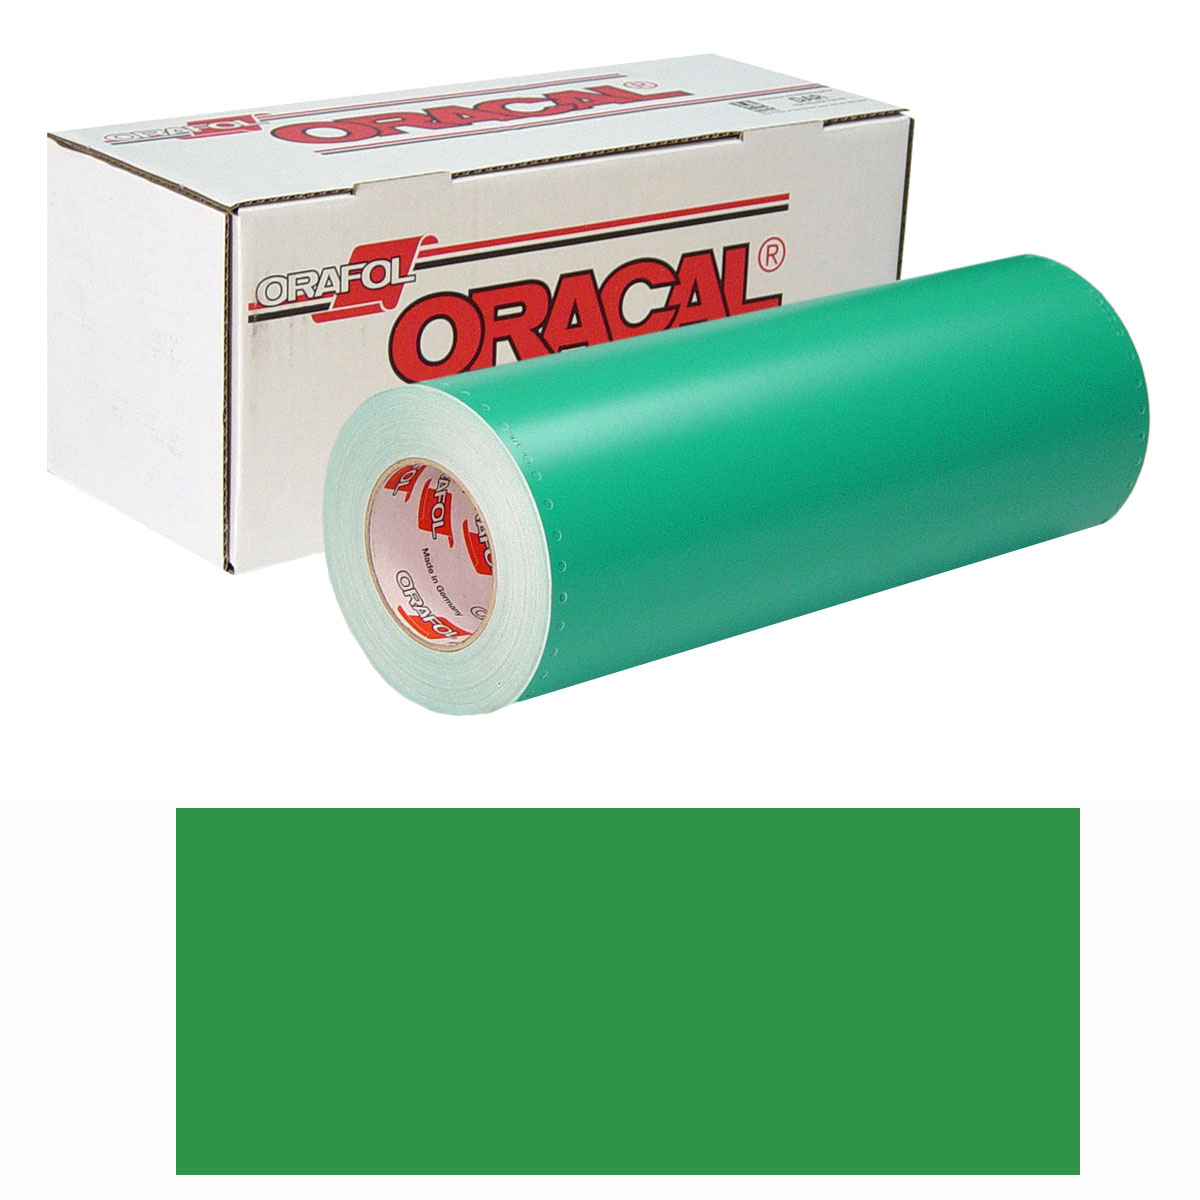 ORACAL 8500 Unp 48in X 50yd 062 Light Green